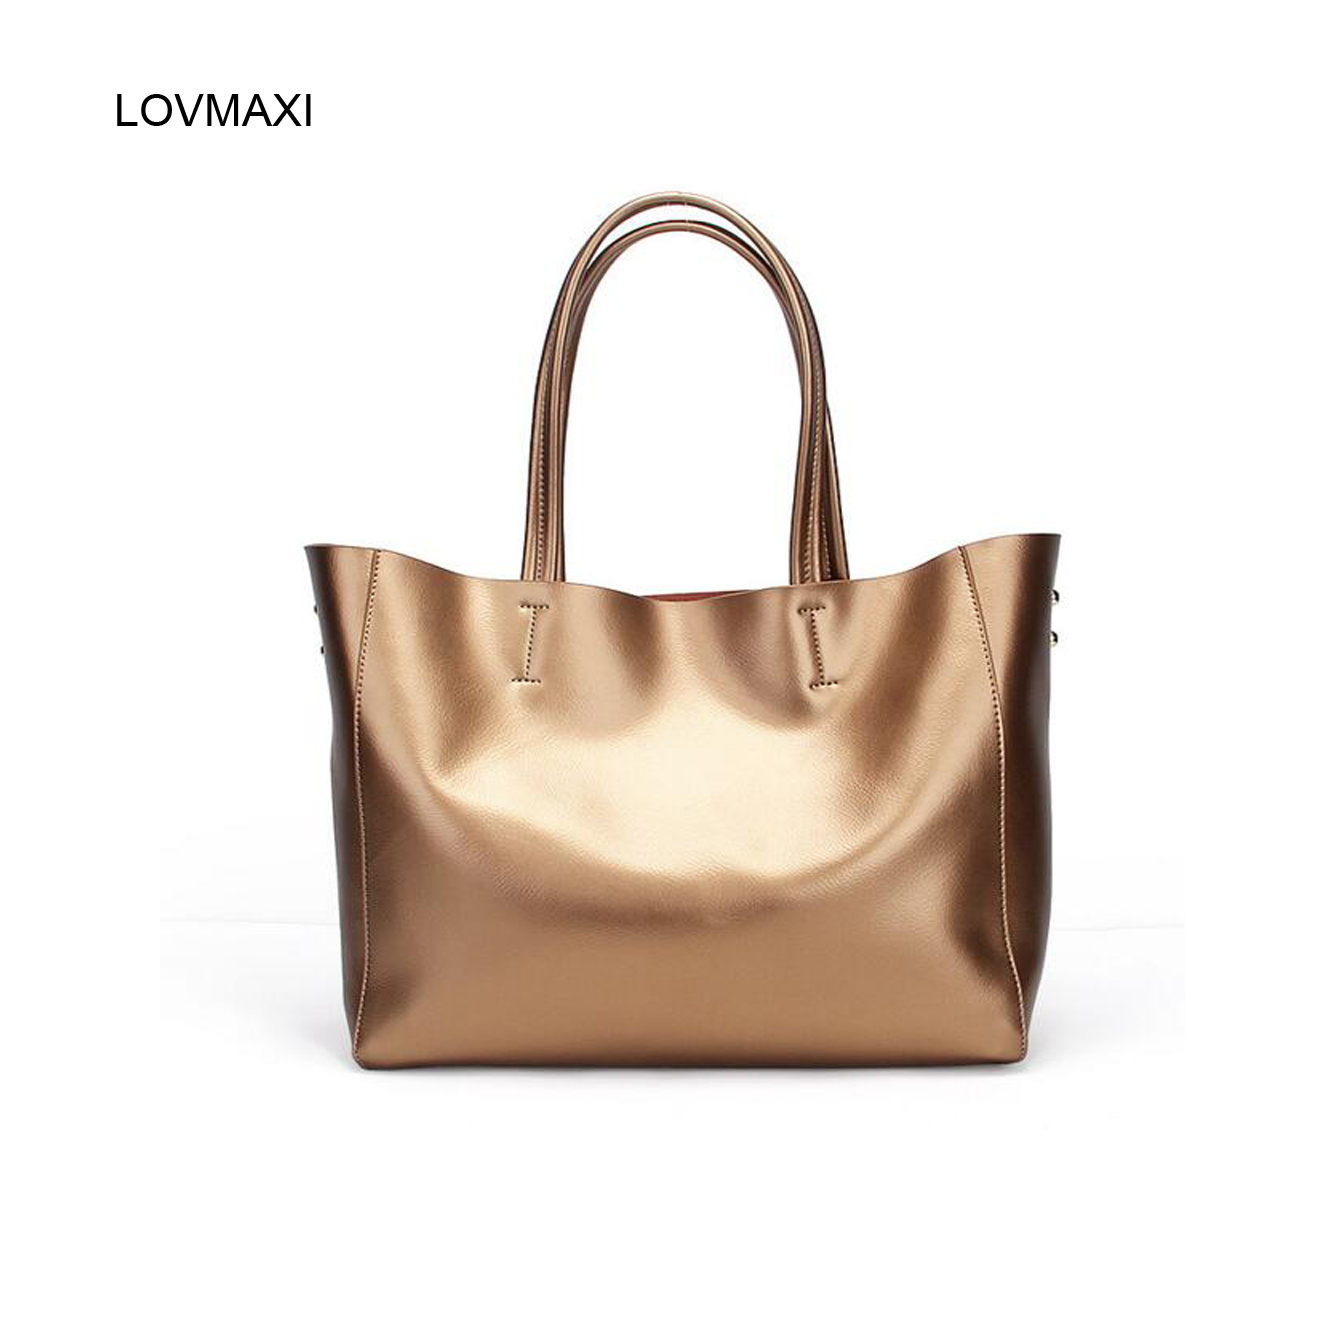 Lovmaxi 2018 Fashion Natural Leather Tote Bags Causal Handbags Luxury Women Designer Handbag Female In Top Handle From Luggage On